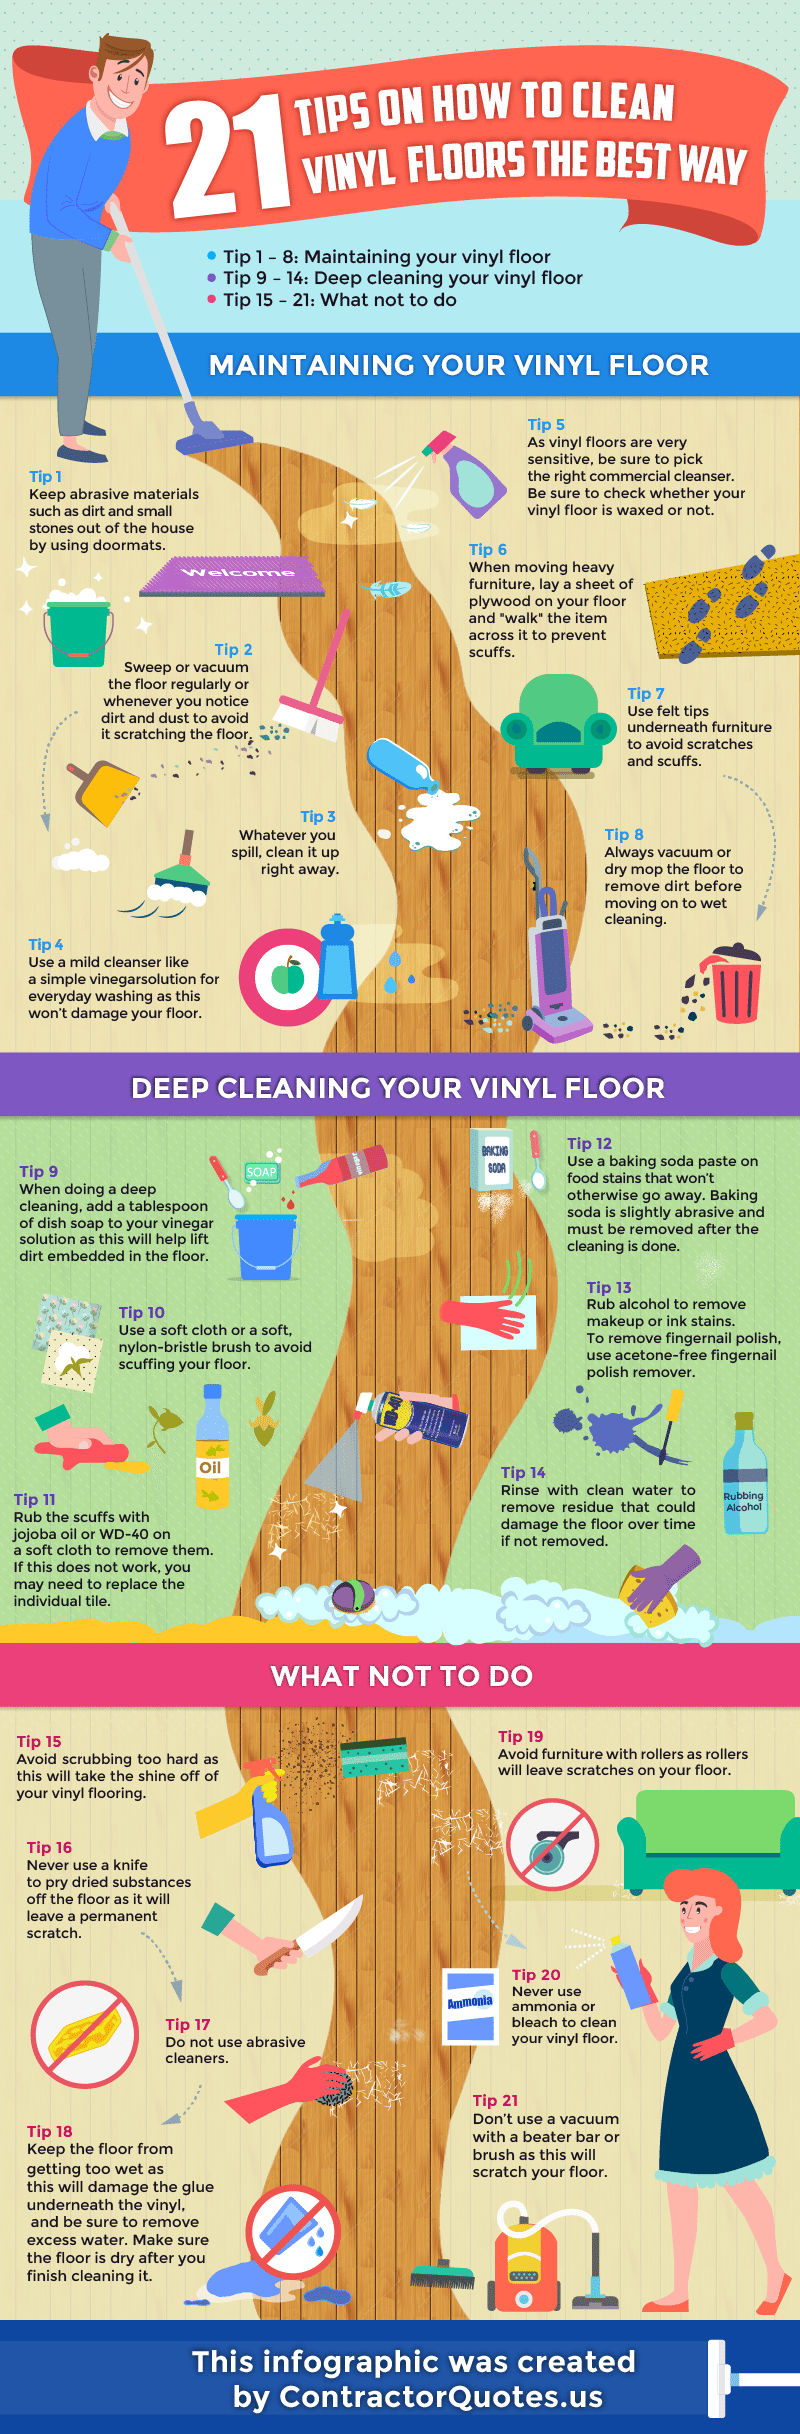 tips-on-how-to-clean-vinyl-floors-the-best-way